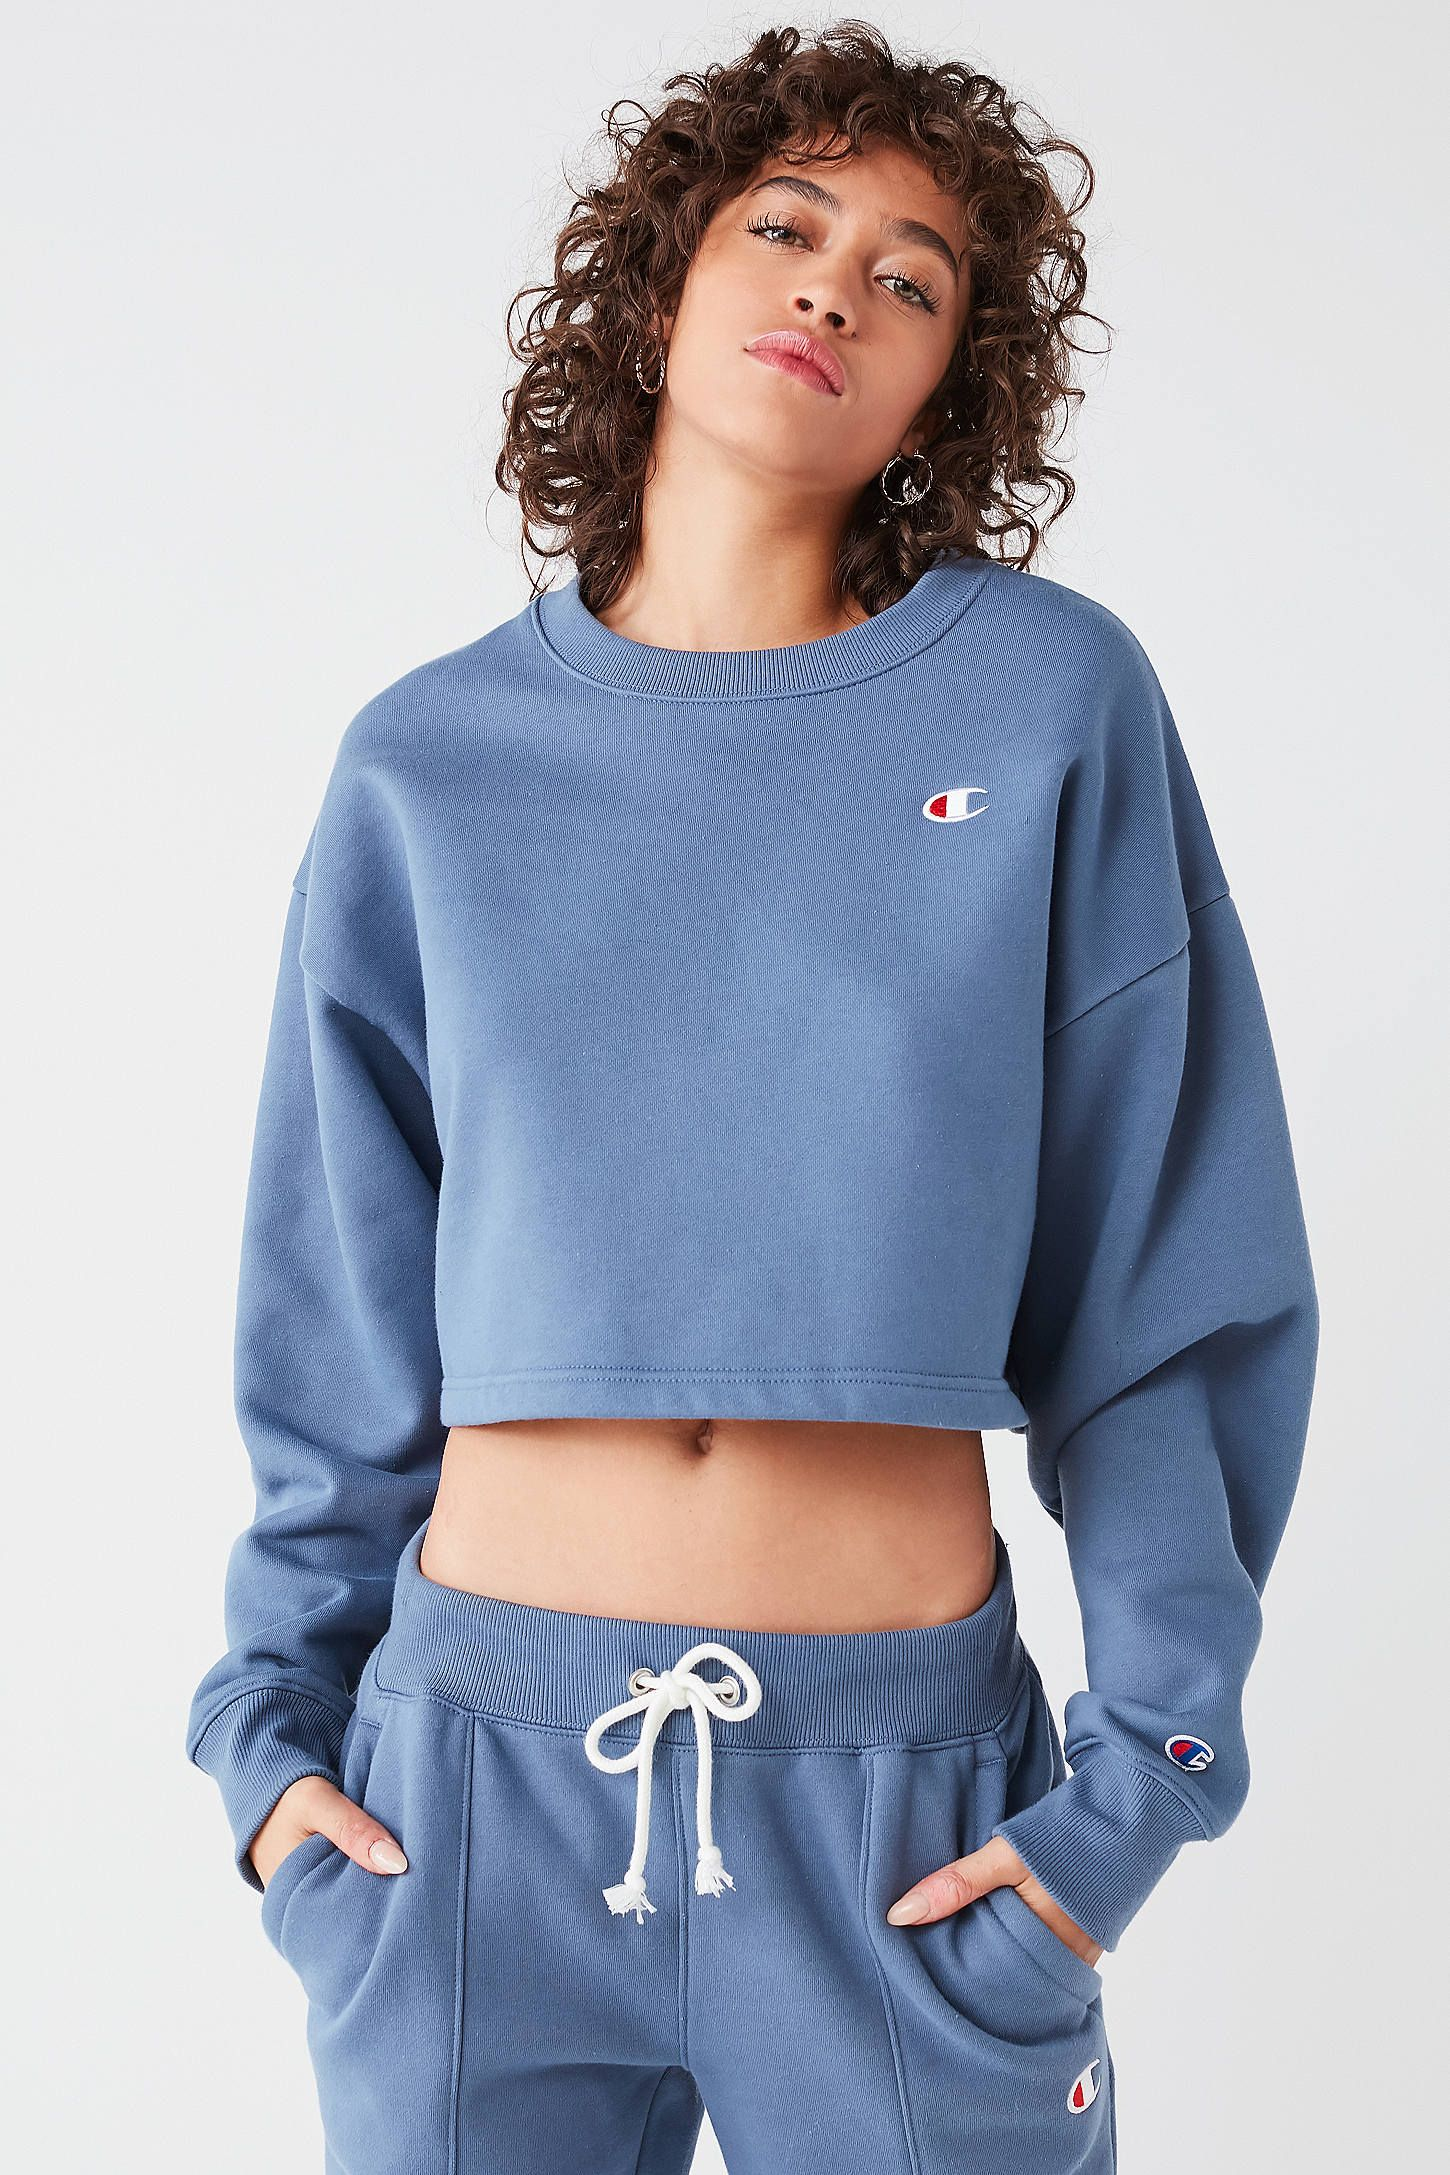 Slide View 6 Champion Uo Cropped Crew Neck Sweatshirt Crew Neck Sweatshirt Sweatshirts Fashion [ 2175 x 1450 Pixel ]